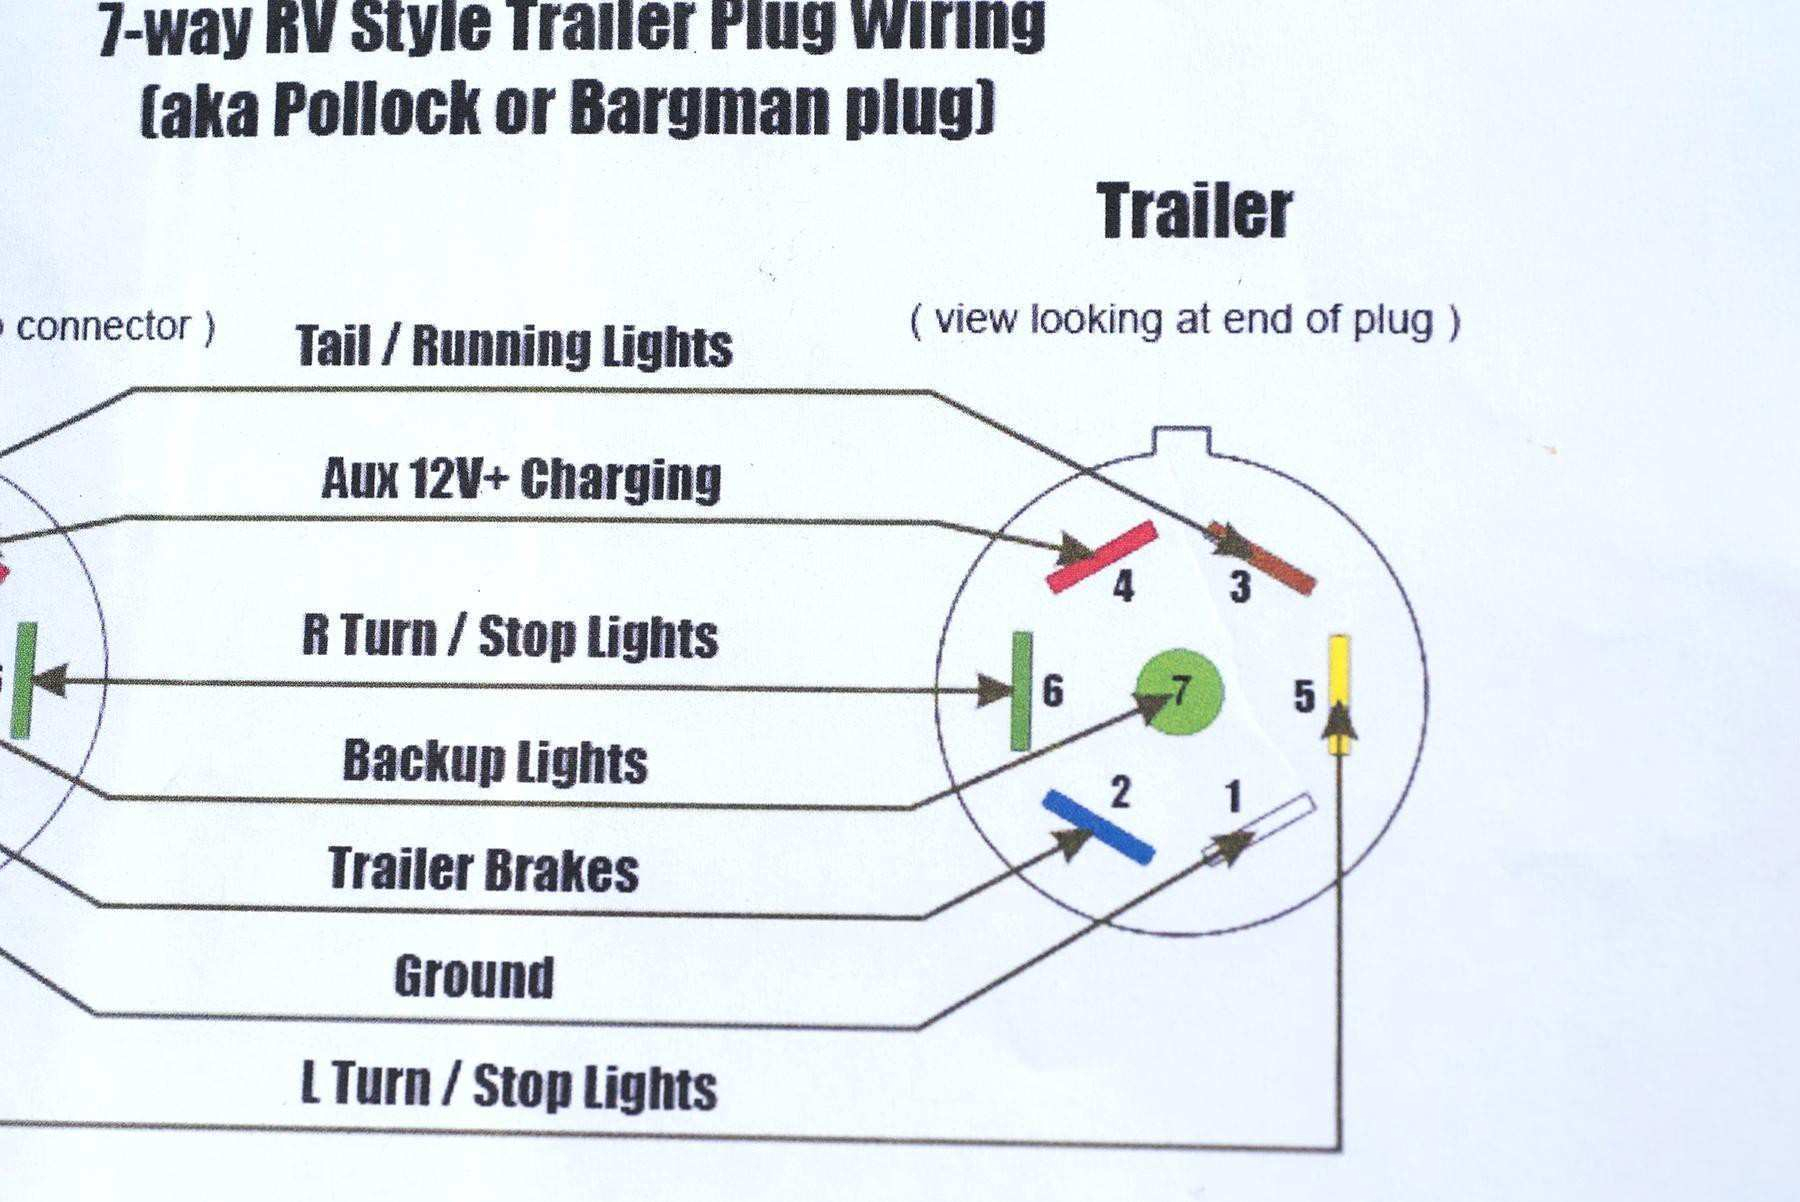 Pollak Trailer Plug Wiring Diagram - Free Wiring Diagram For You • - Pollak Trailer Plug Wiring Diagram